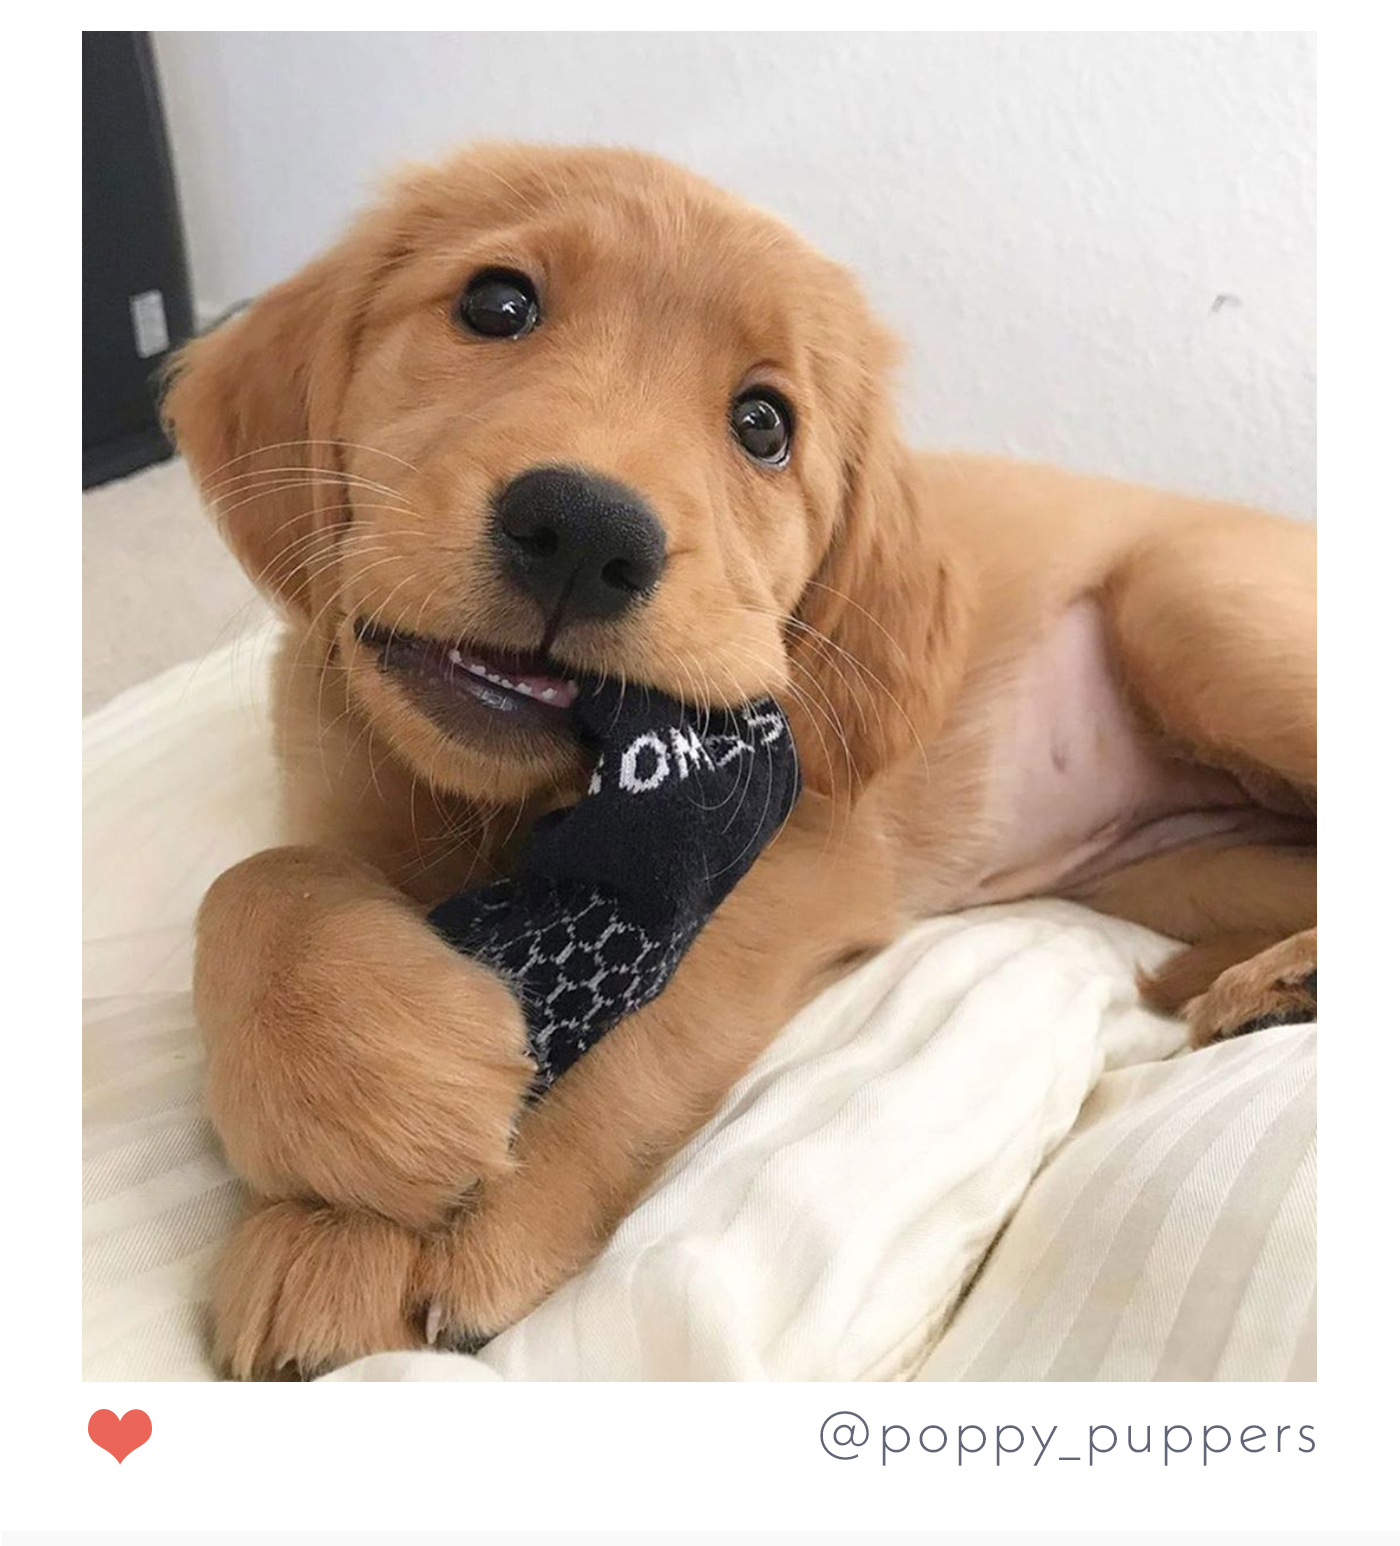 @poppy_puppers